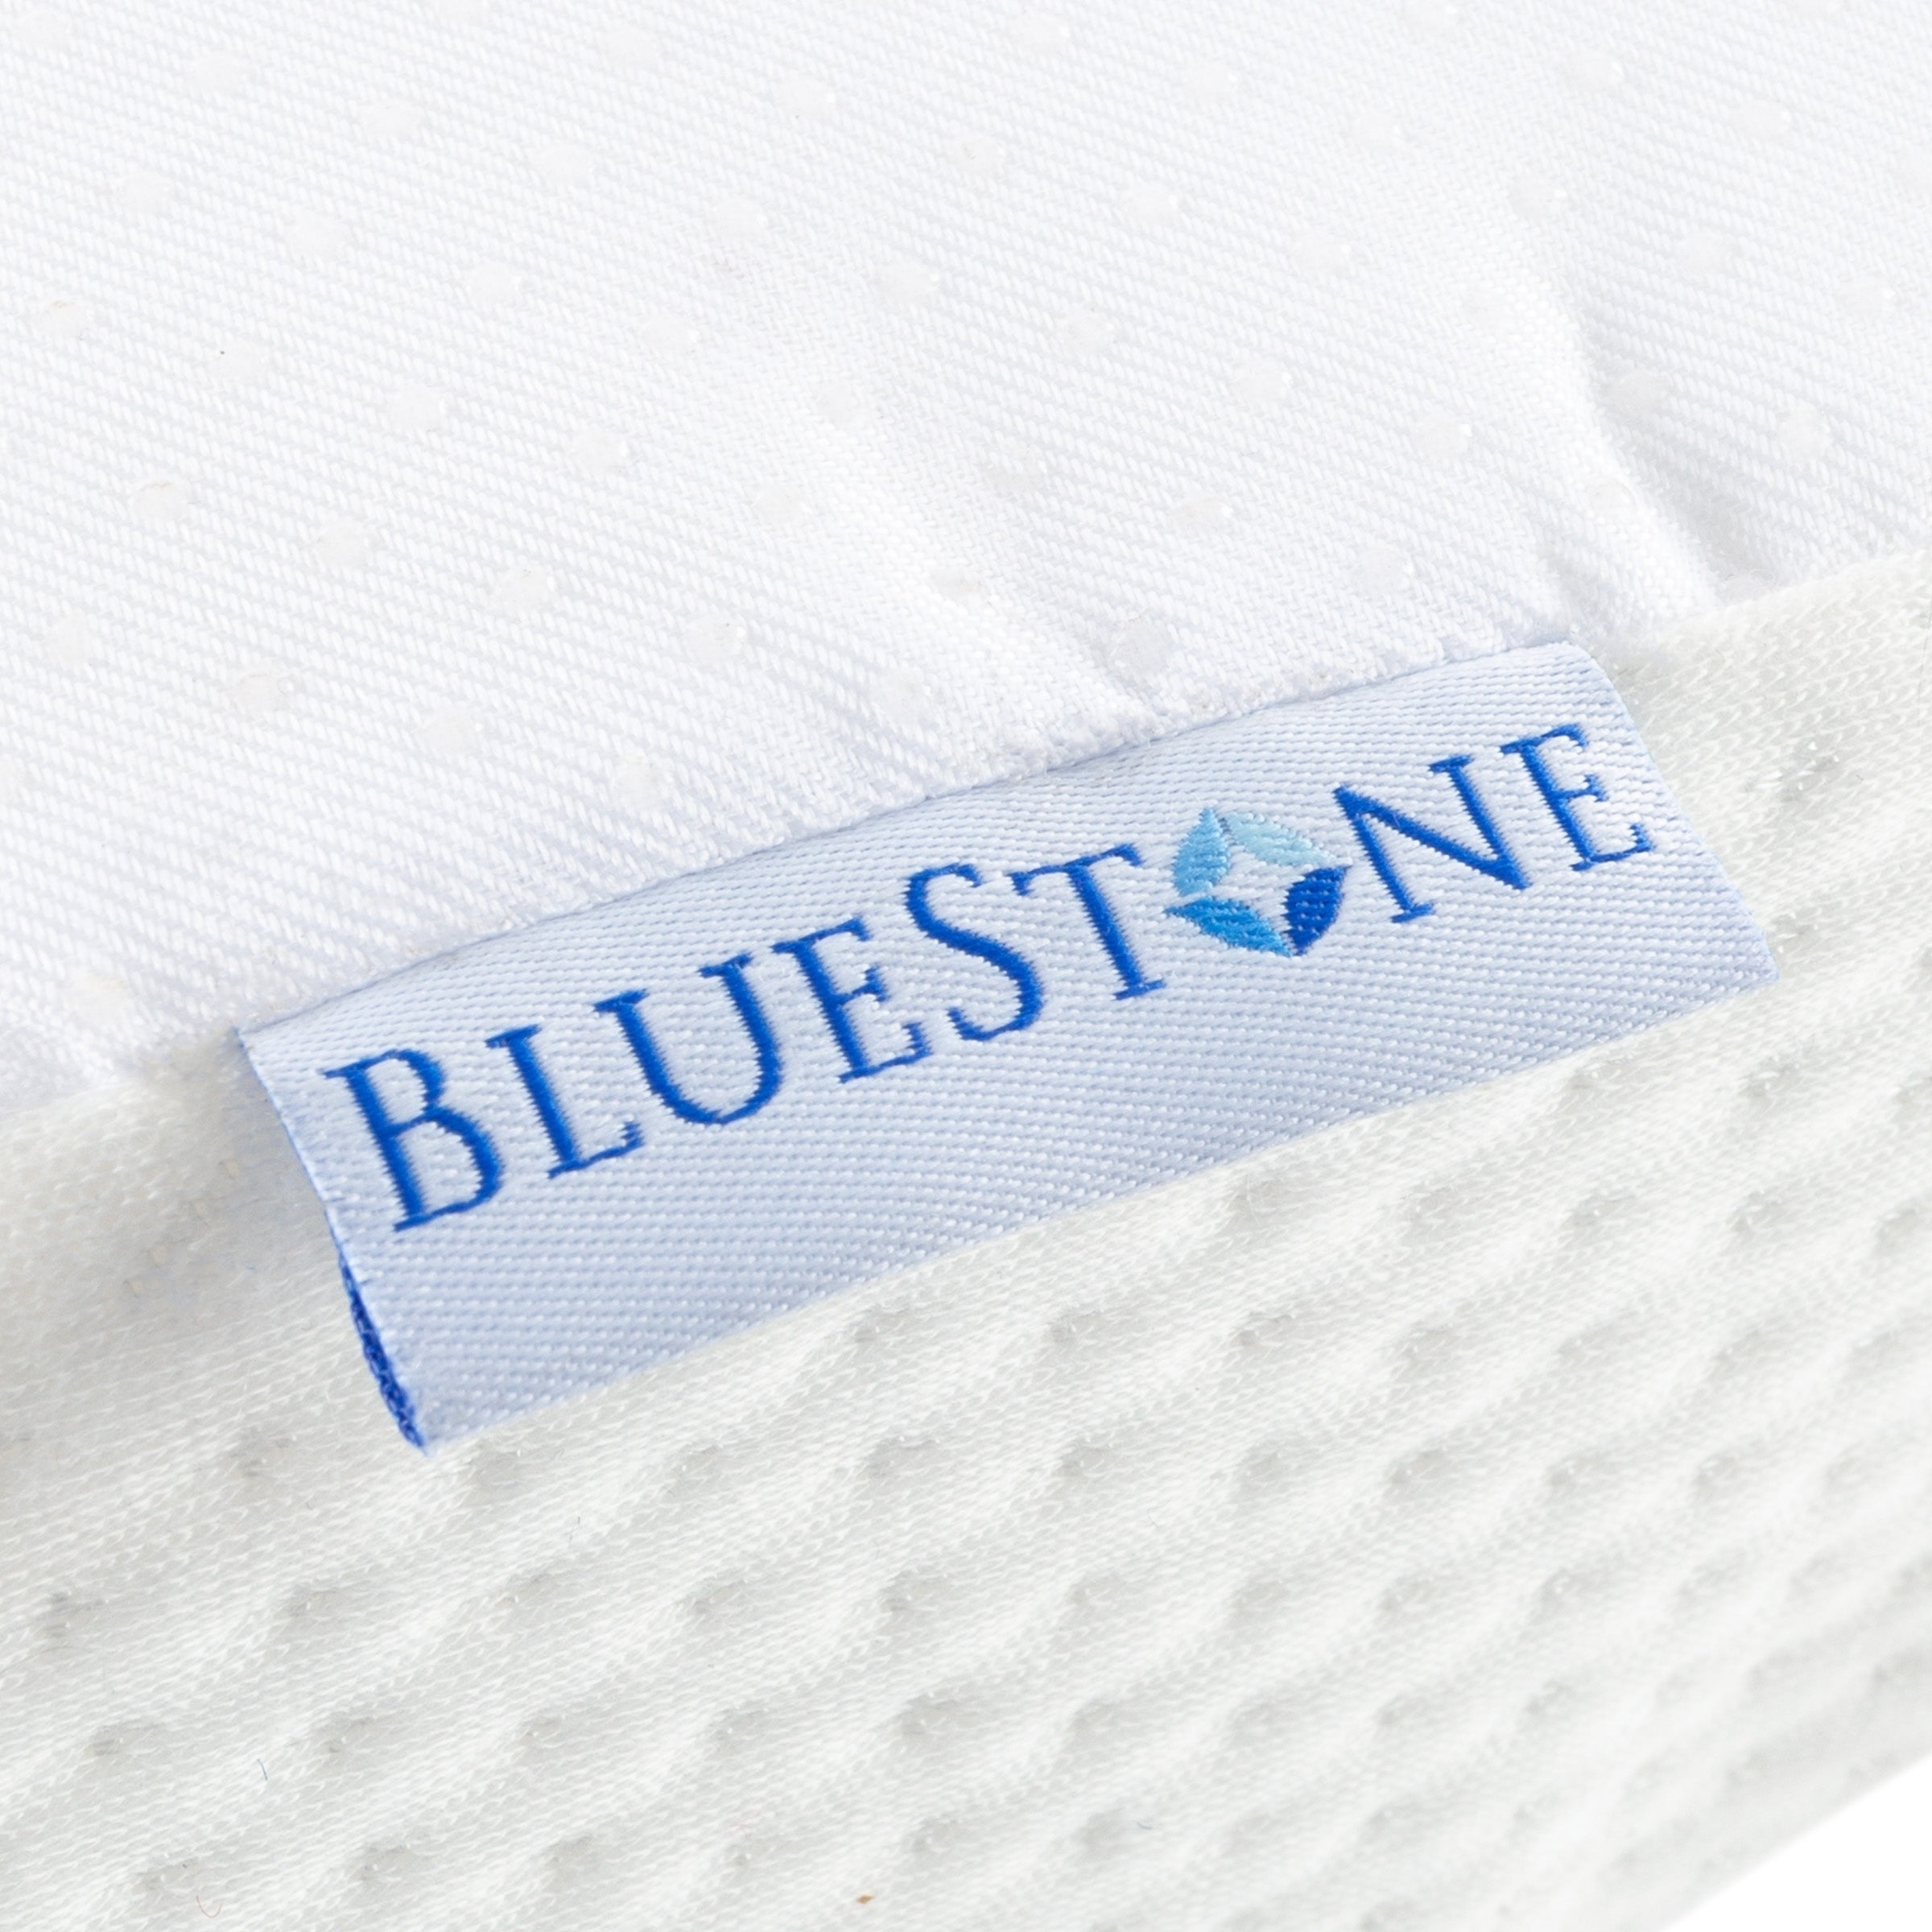 Toddler Bed Bumper Kids Safety Sleep Guard Foam Mattress Barrier Cushion For Twin F Q And King Beds By Bluestone Overstock 27389640 Twin Full Queen Set Of 1 King